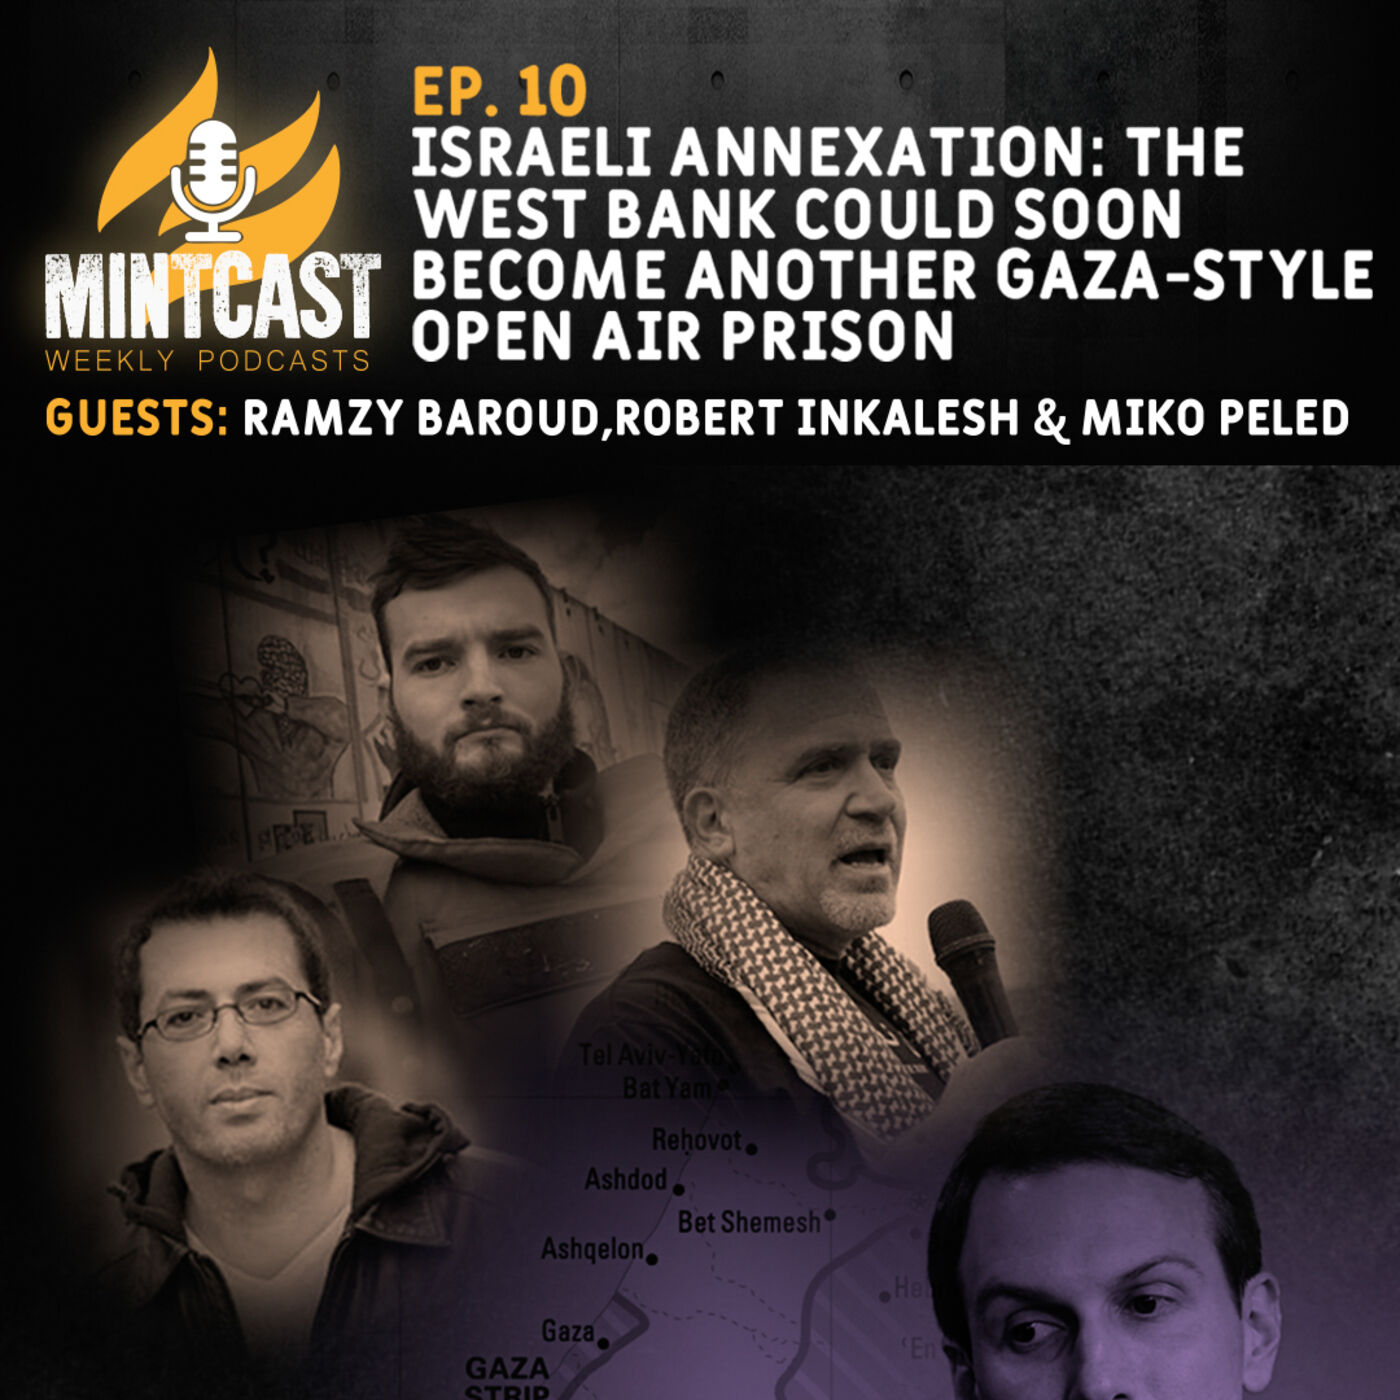 Podcast Panel: How Israeli Annexation Could Turn the West Bank Into Another Gaza-Style Open Air Prison